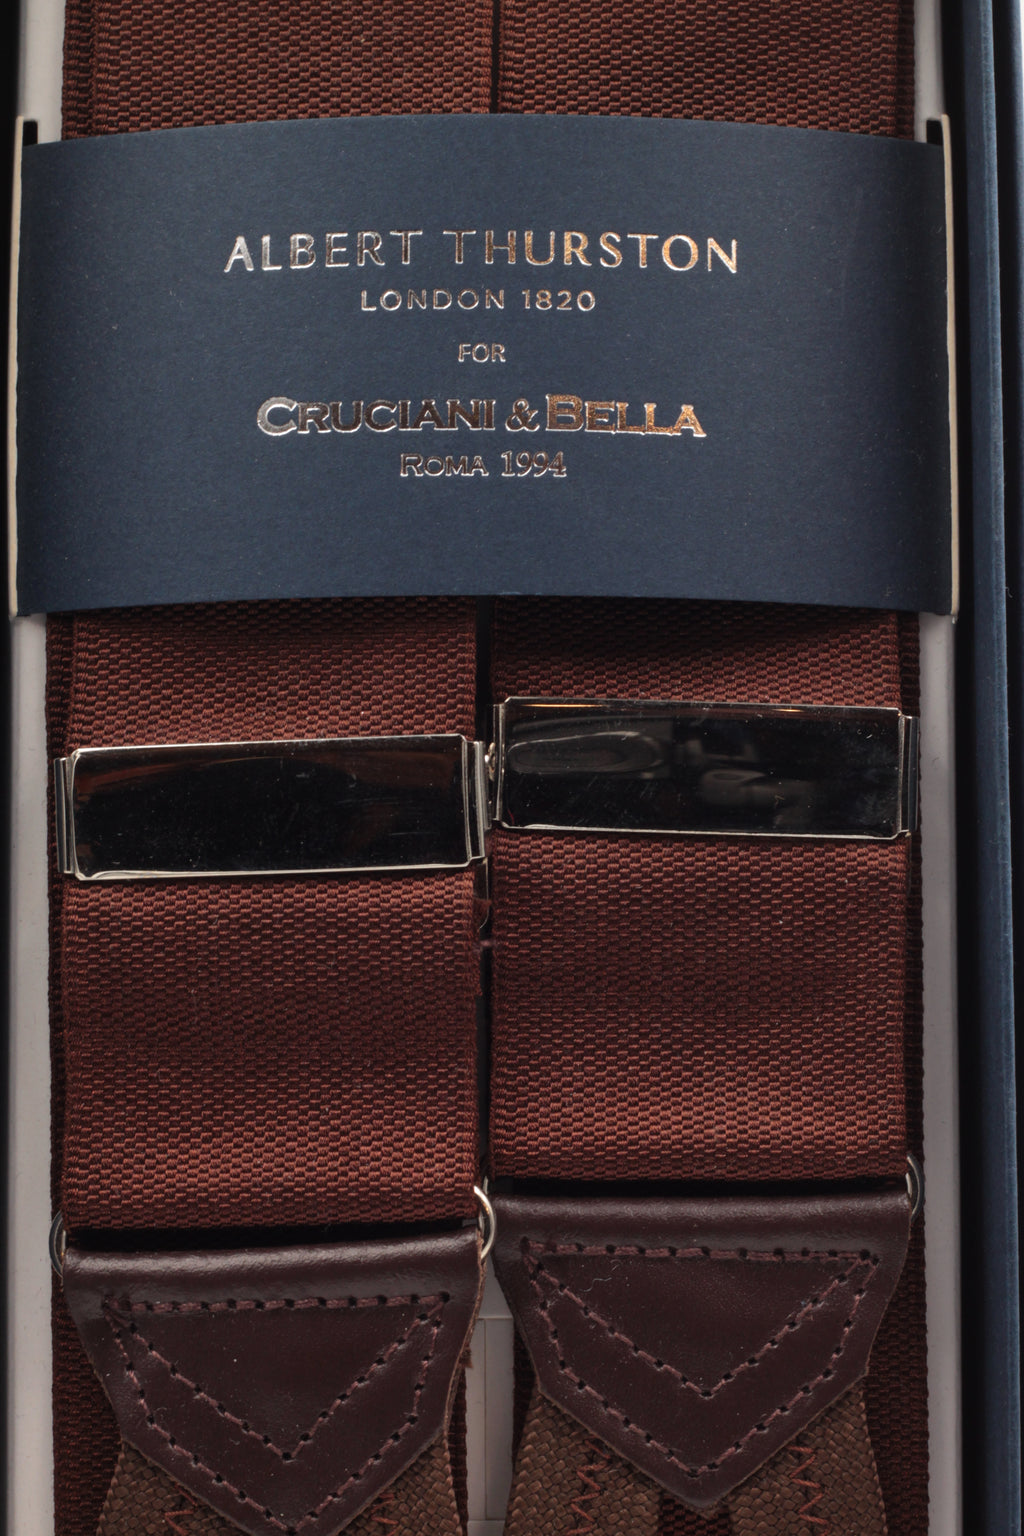 Albert Thurston for Cruciani & Bella Made in England Adjustable Sizing 40 mm Woven Barathea  Brown plain Braces Braid ends Y-Shaped Nickel Fittings Size: XL